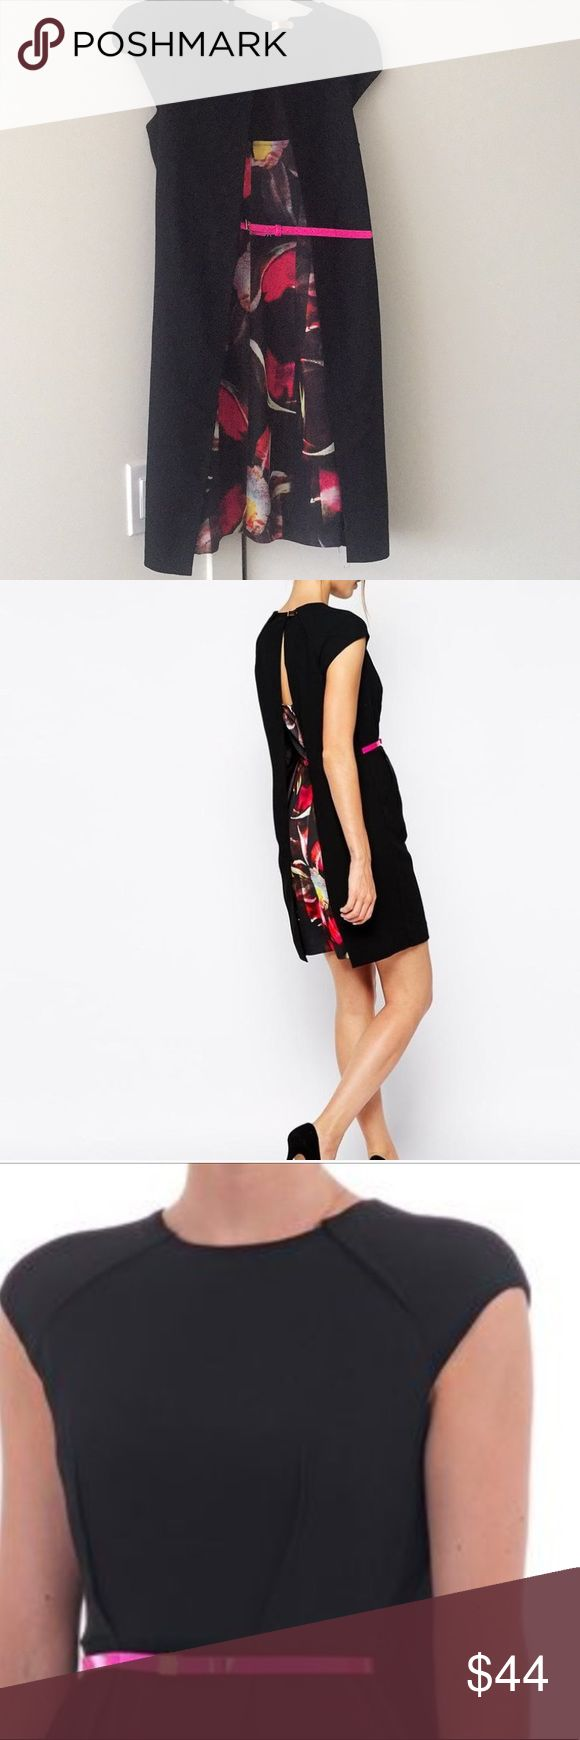 Ted Baker classic and hot dress This dress has a wow factor with its elegant simple front and surprisingly colorful and sexy back. Perfect for a smart function. Not just another black dress! Ted Baker Dresses Mini